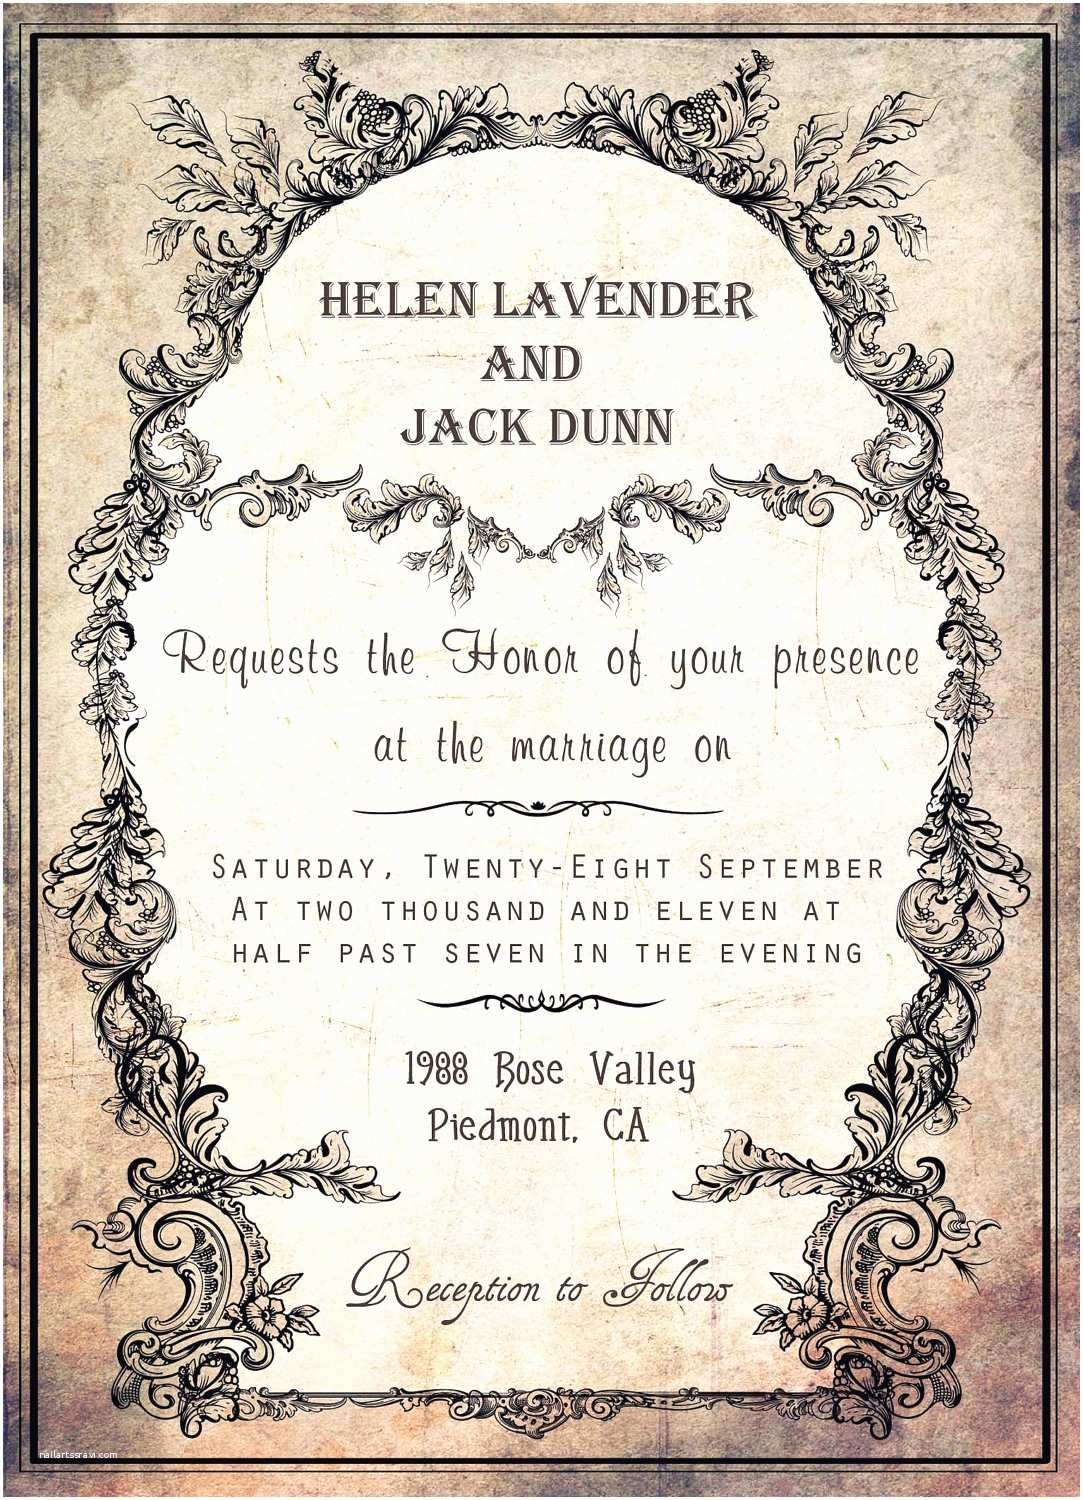 Vintage Style Wedding Invitations Vintage Style Wedding Invitation Card with Black Floral